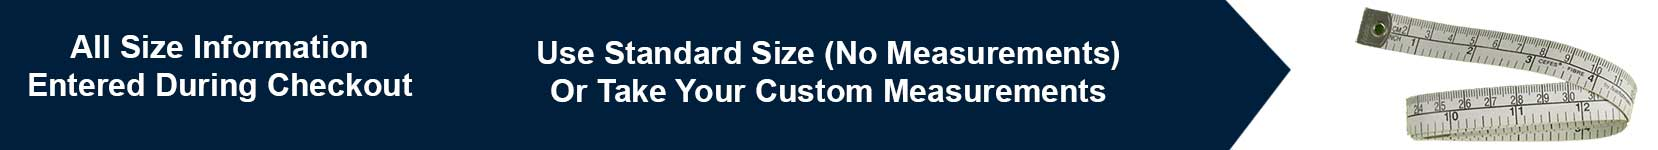 Free Custom Dress Shirt Promotion